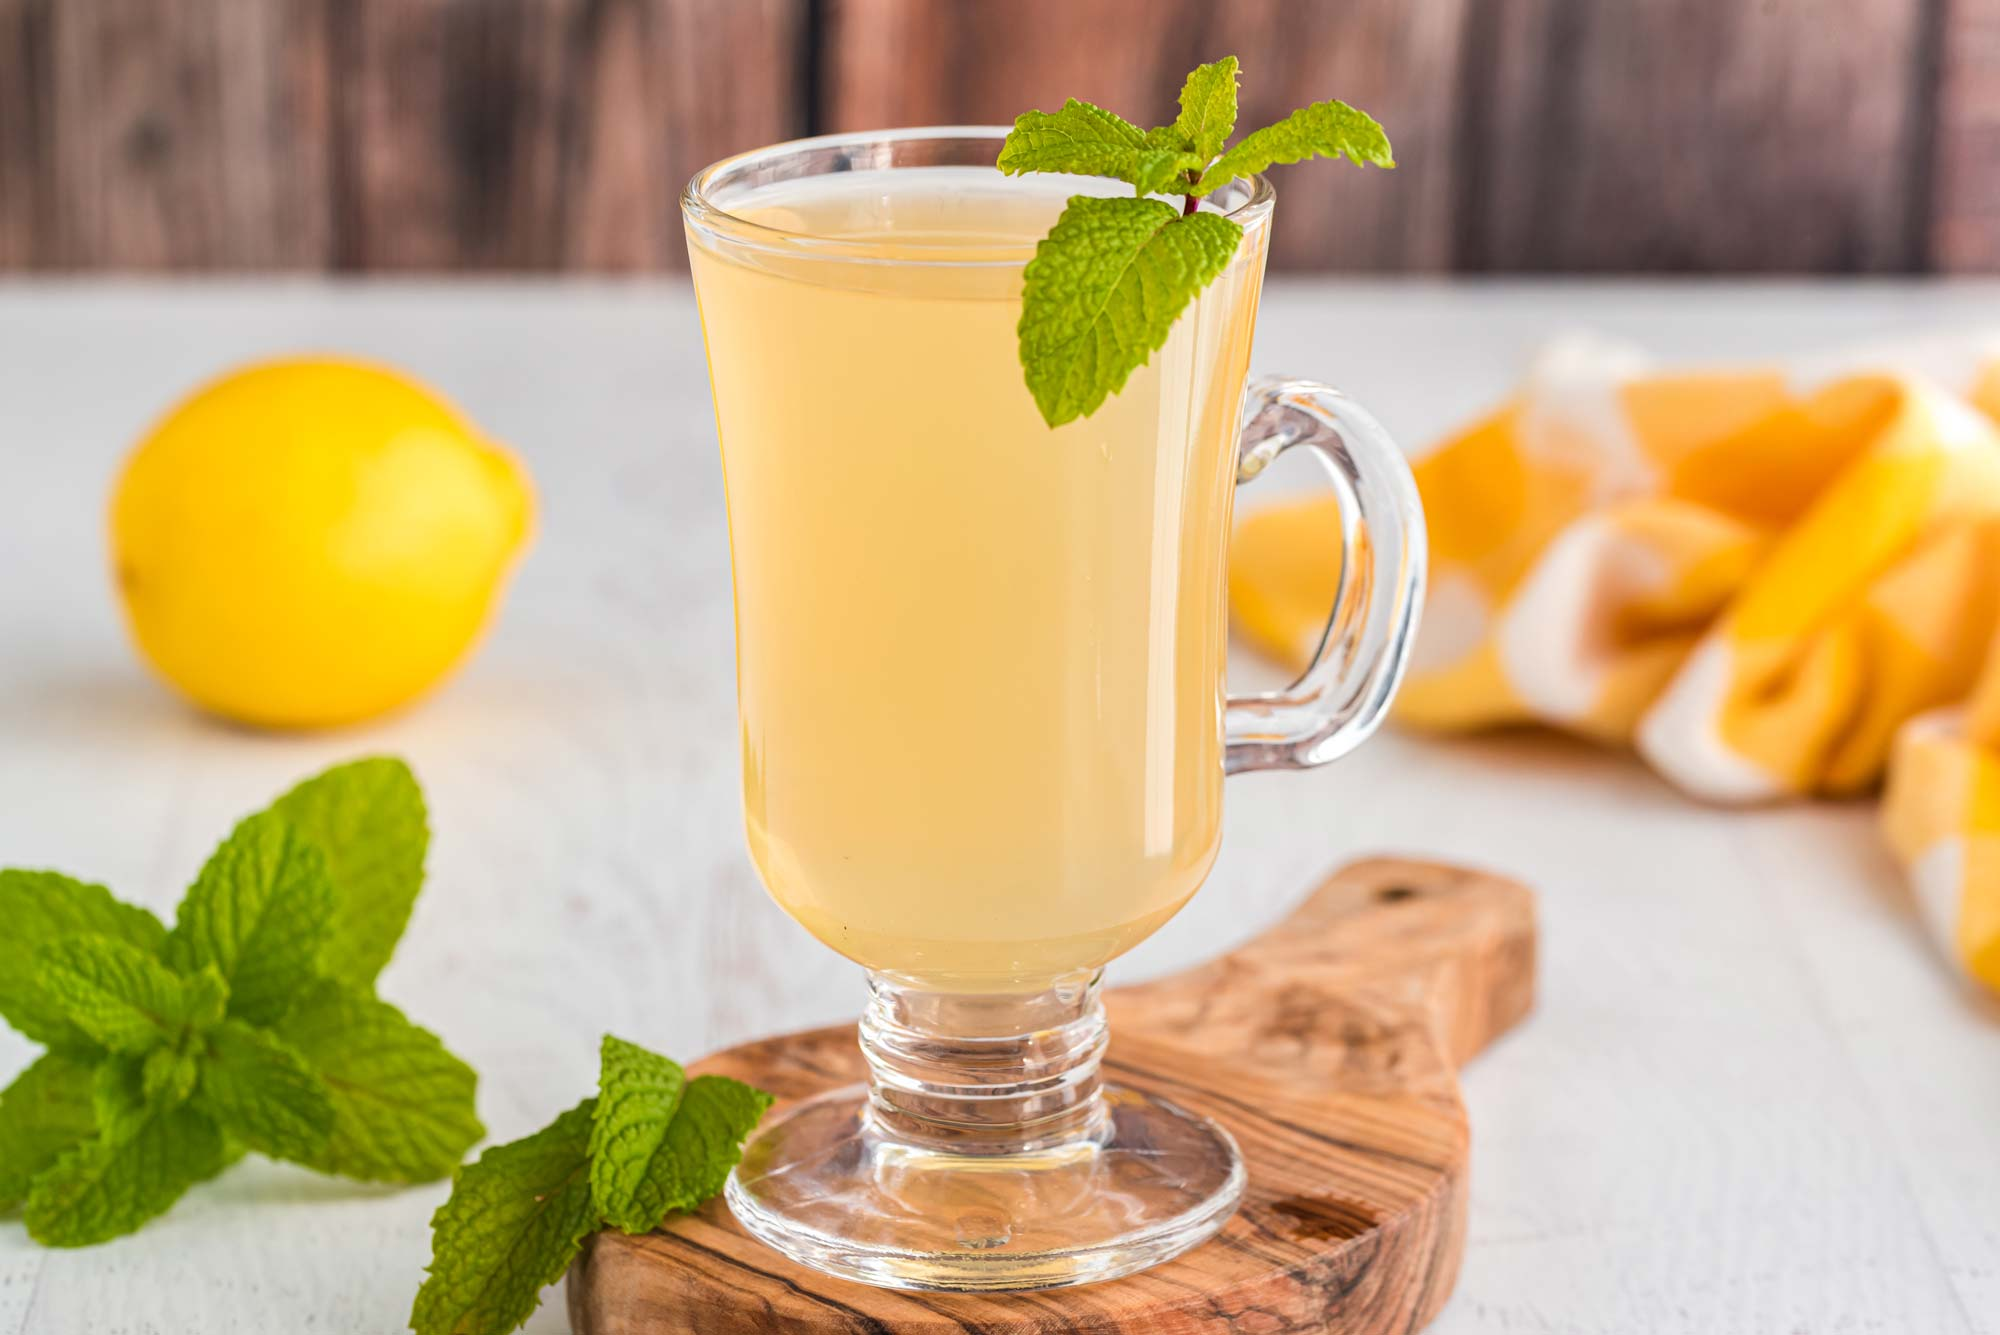 warm lavender mint tea lemonade in glass